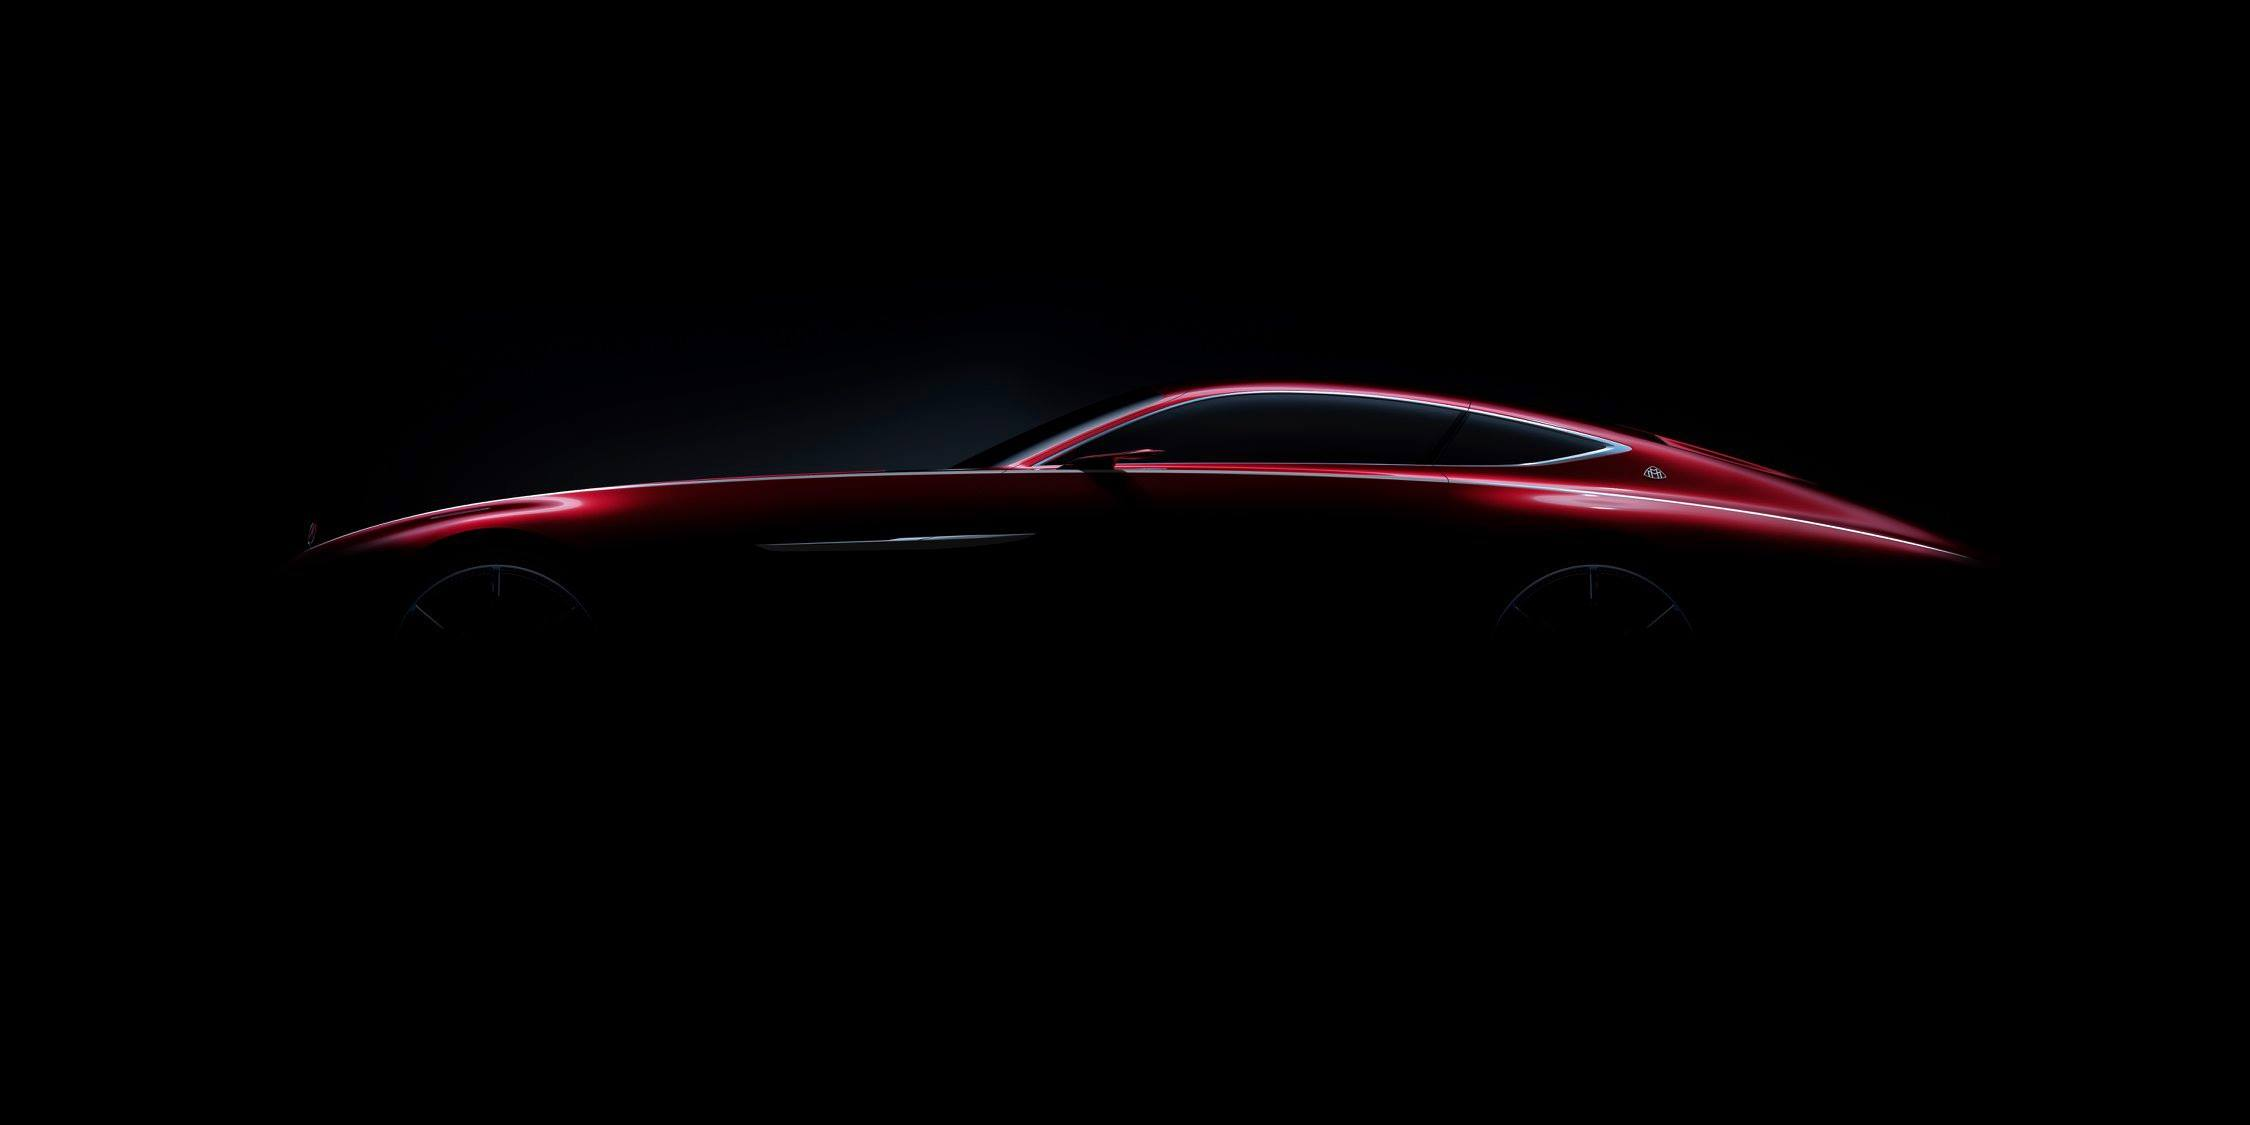 Mercedes-Maybach Just Teased its Most Luxurious Car Ever